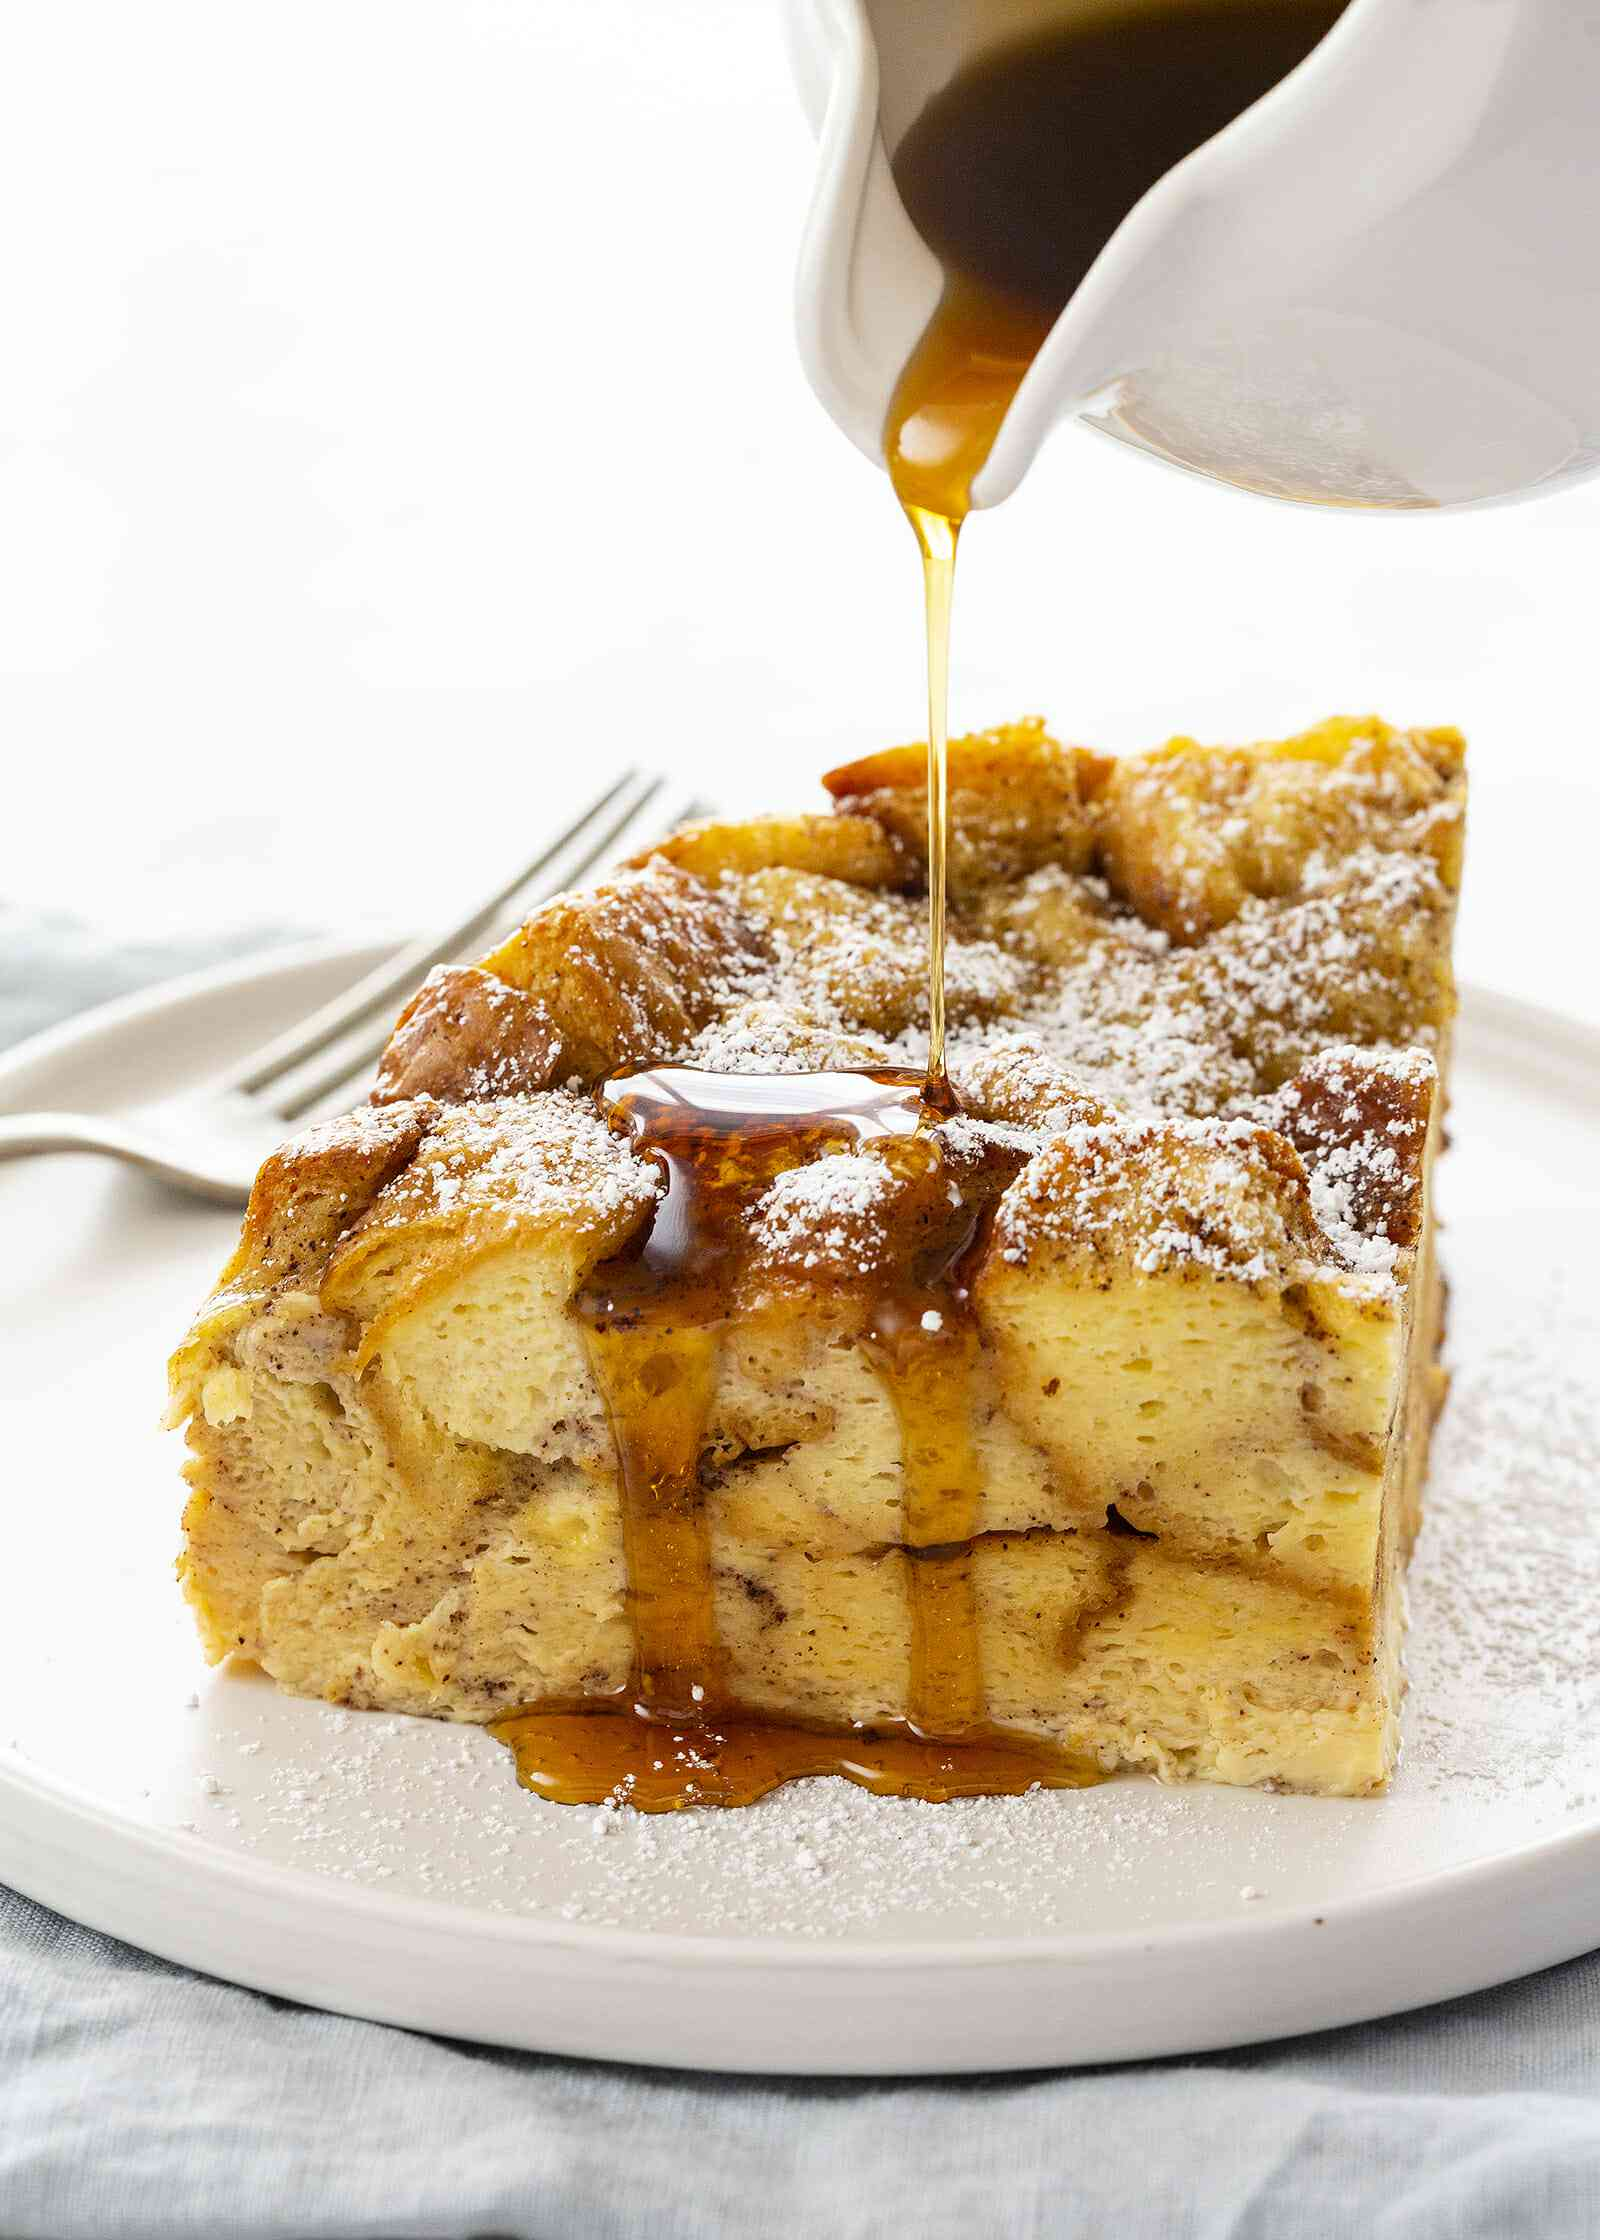 Crockpot French Toast Casserole - slice french toast casserole on plate with syrup and fork